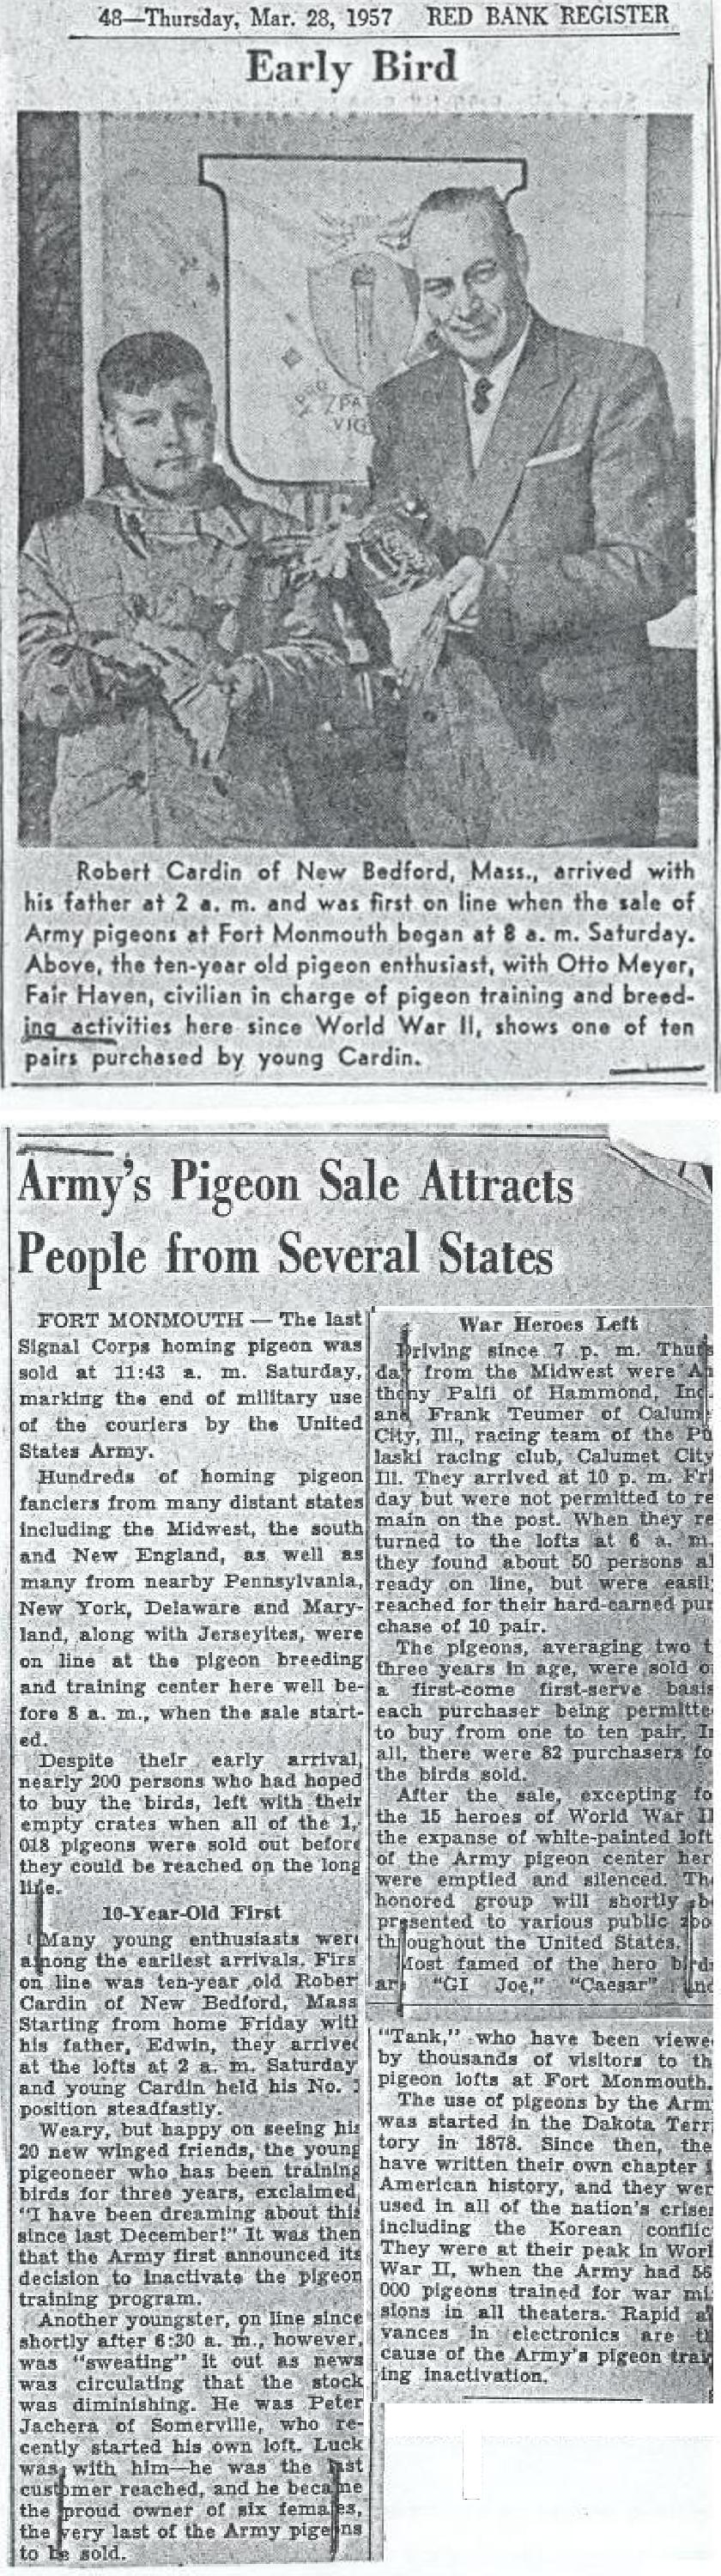 Early bird sale of Fort Monmouth Army Pigeons with photo of Otto Meyer